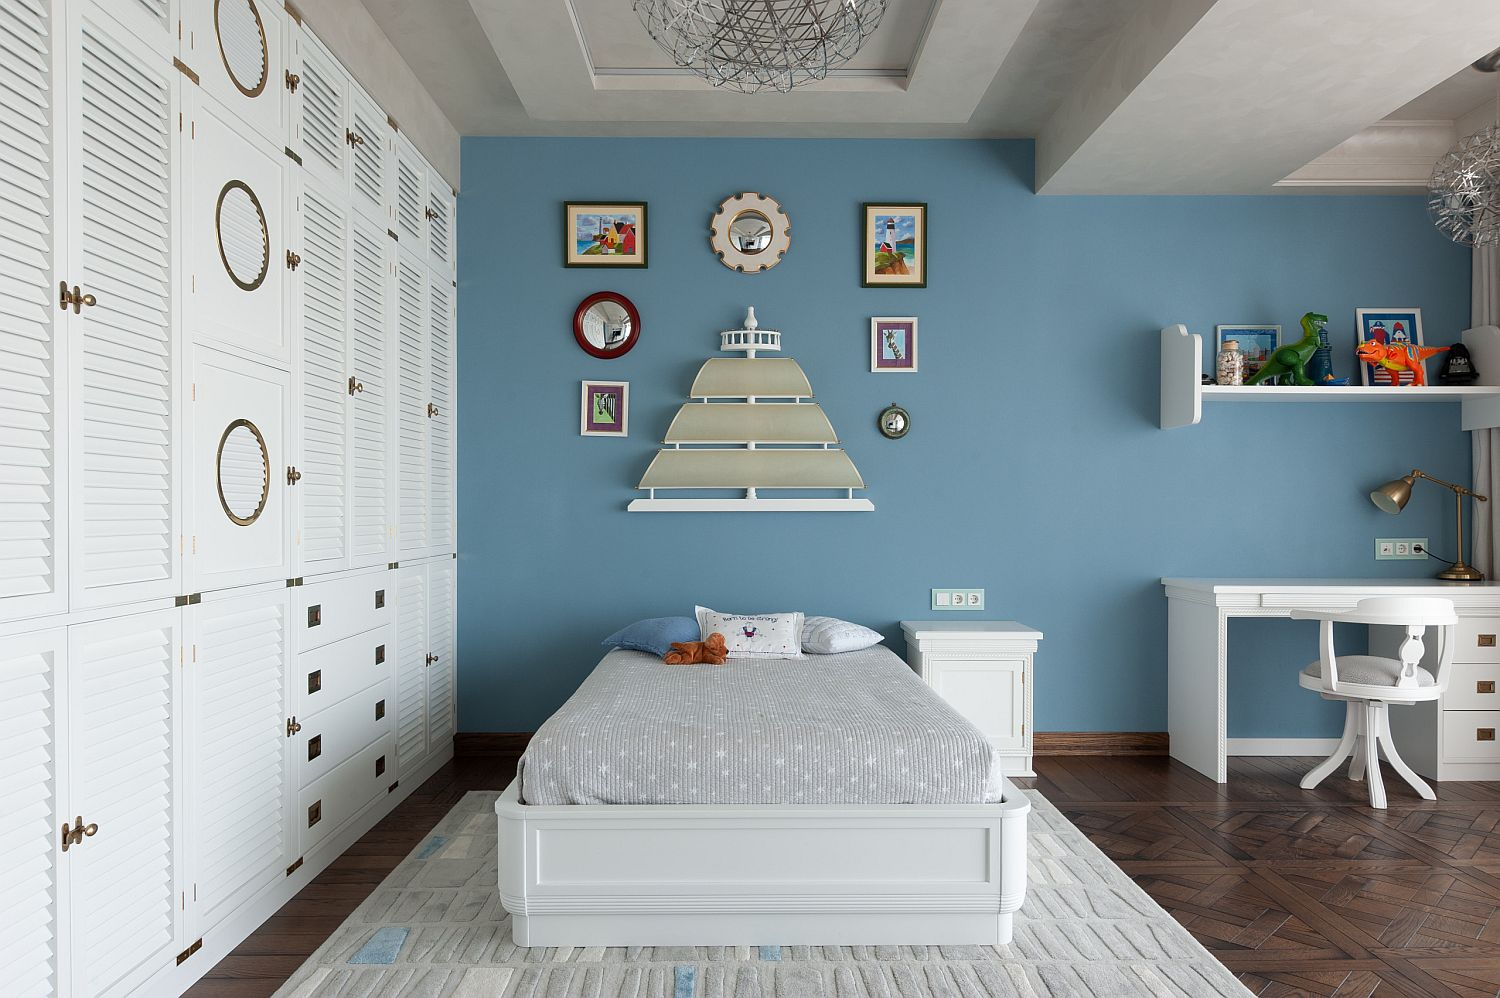 Gray and white kids' bedroom with accent wall in blue